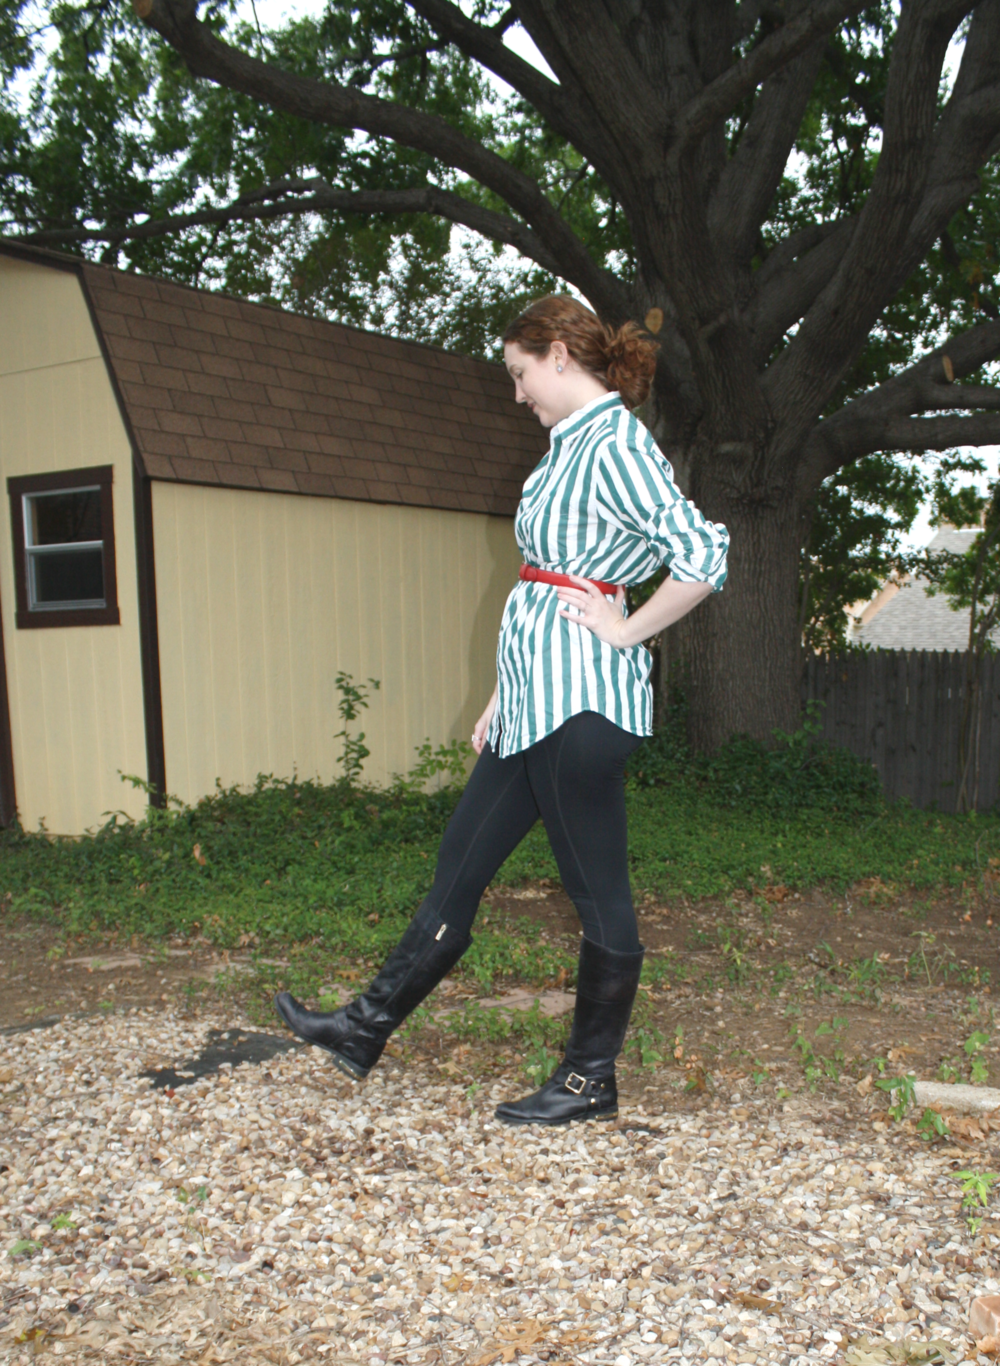 J. Crew men's green striped button down shirt +Girlfriend Collective black leggings, + Vince Camuto boots + Vintage red belt